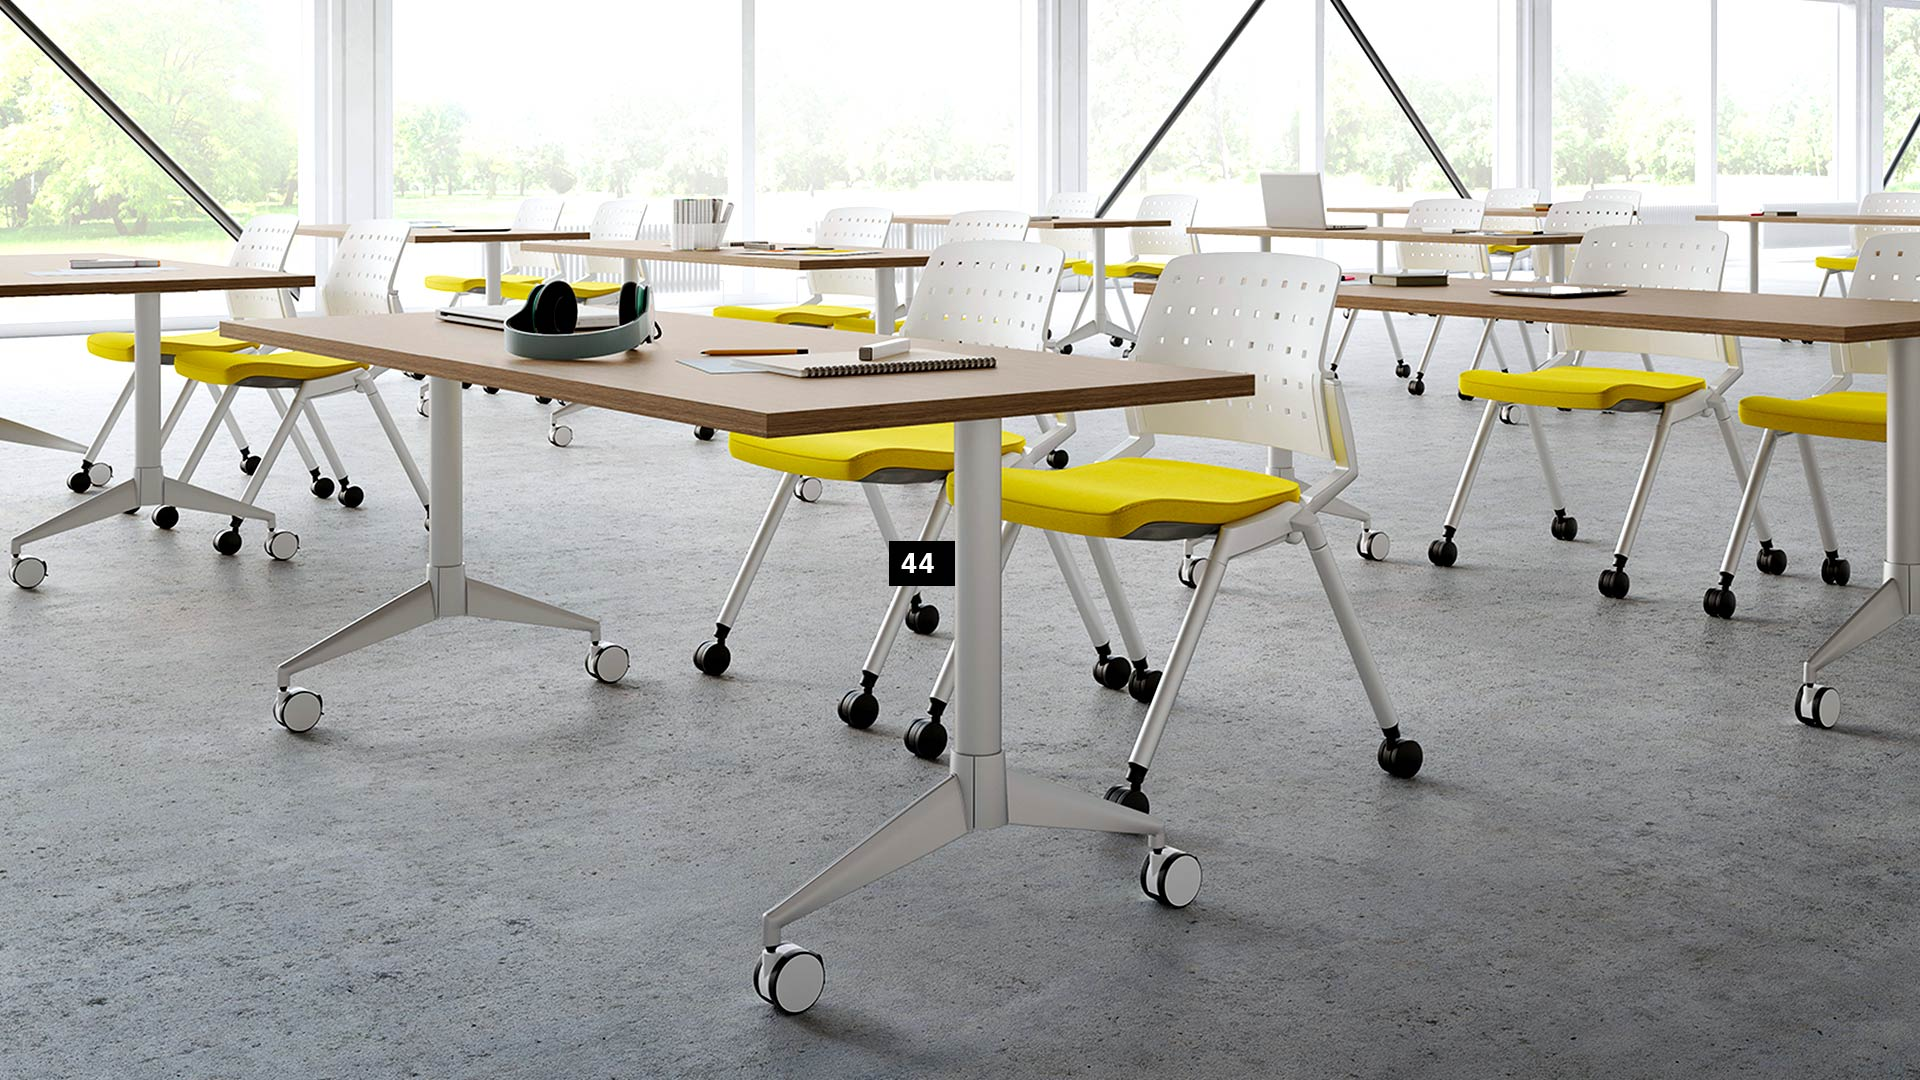 abstract-modern-furniture-ofs-applause-table